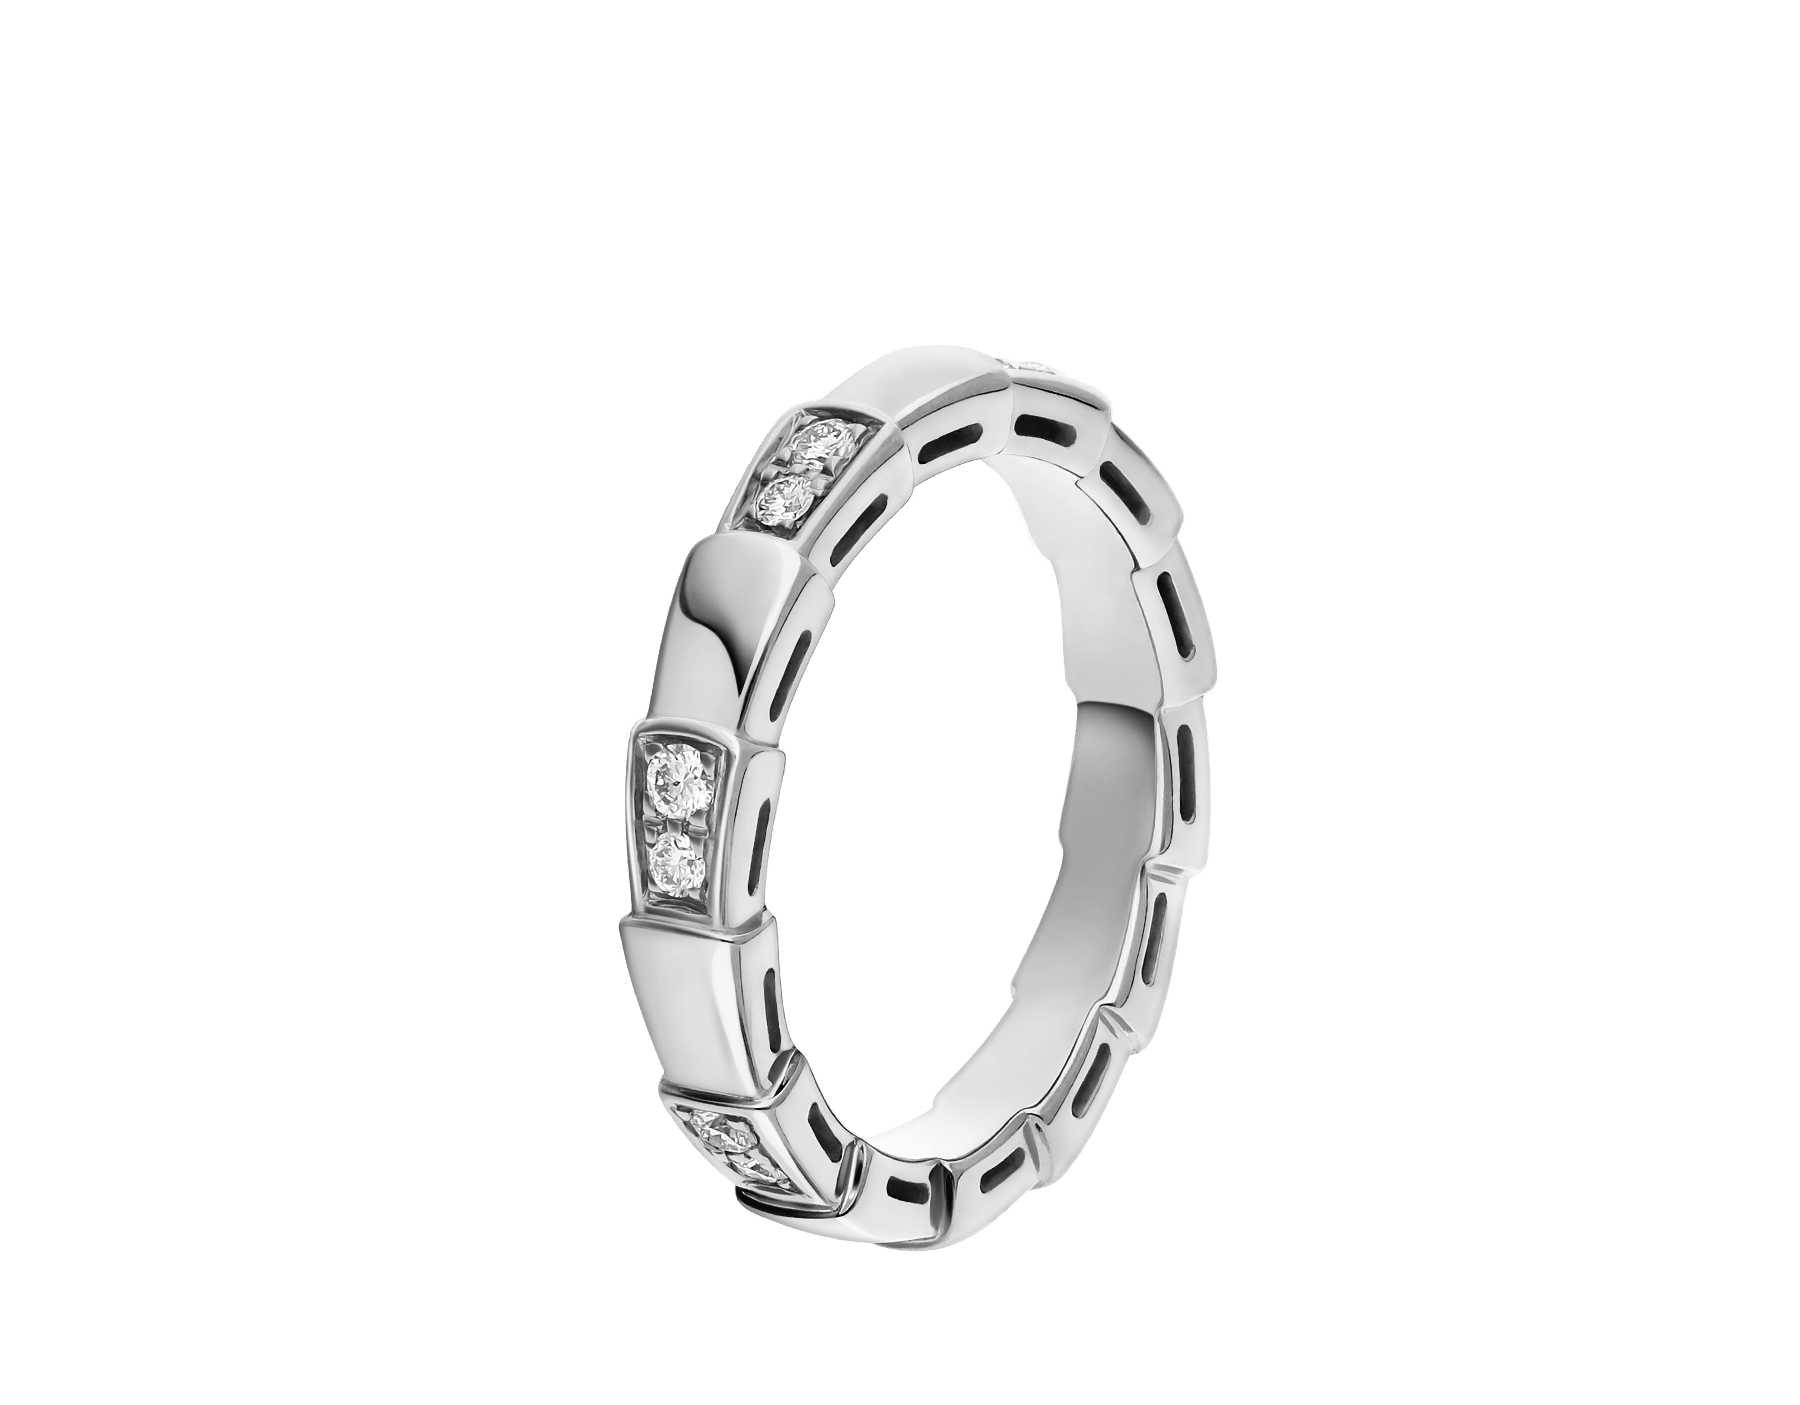 Serpenti Viper band ring in 18 kt white gold, set with demi-pavé diamonds. AN857898 image 1